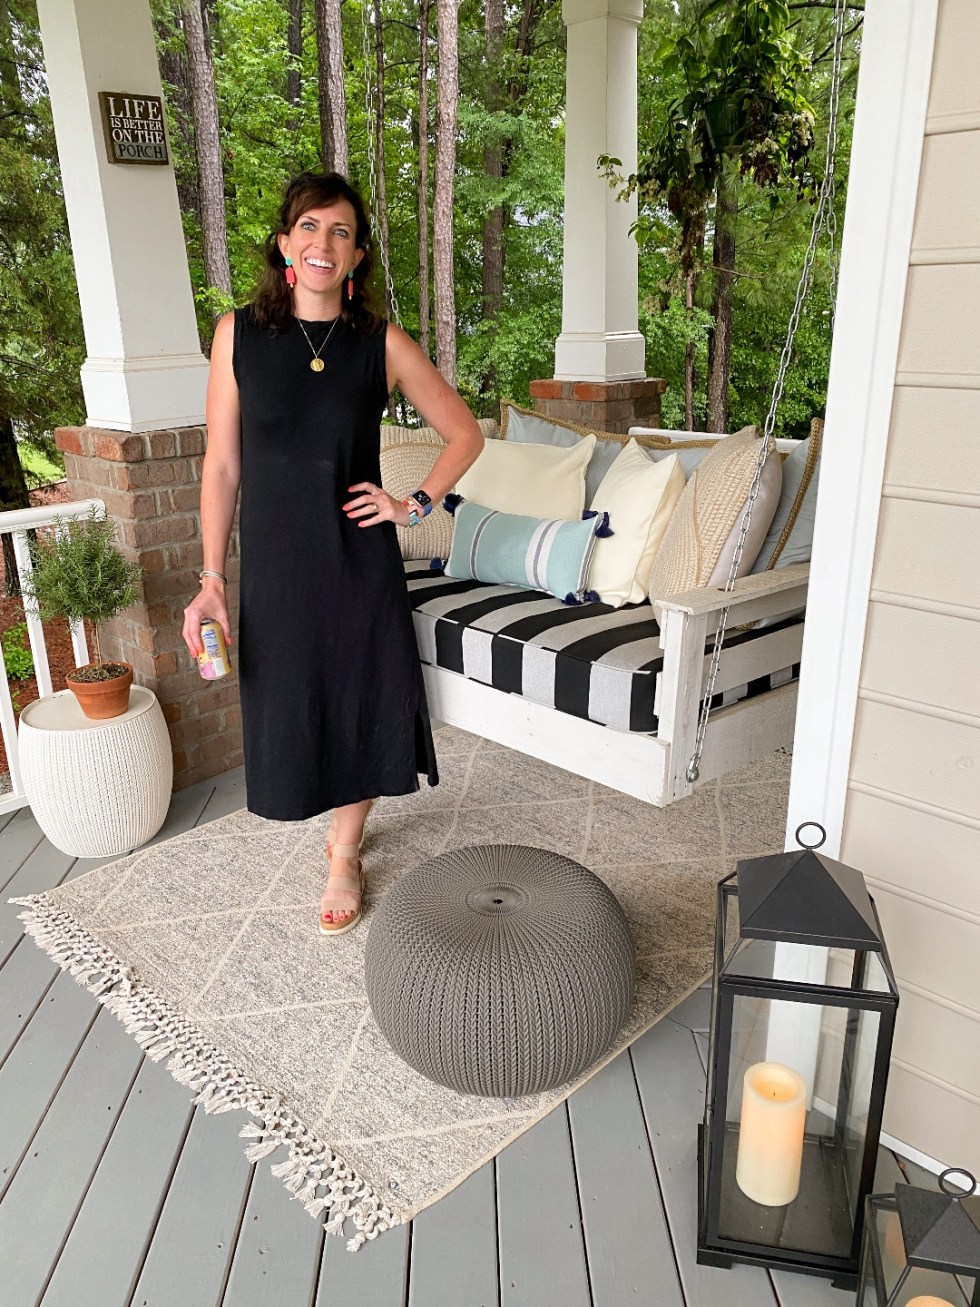 Style Diary: What I've Been Wearing this Spring - I'm Fixin' To - @imfixintoblog | Spring Essentials by popular NC fashion blog, I'm Fixin' To: image of a woman standing on a porch next to a wooden porch swing with a black and white stripe cushion and wearing a black sleeveless maxi dress and colorful statement earrings.